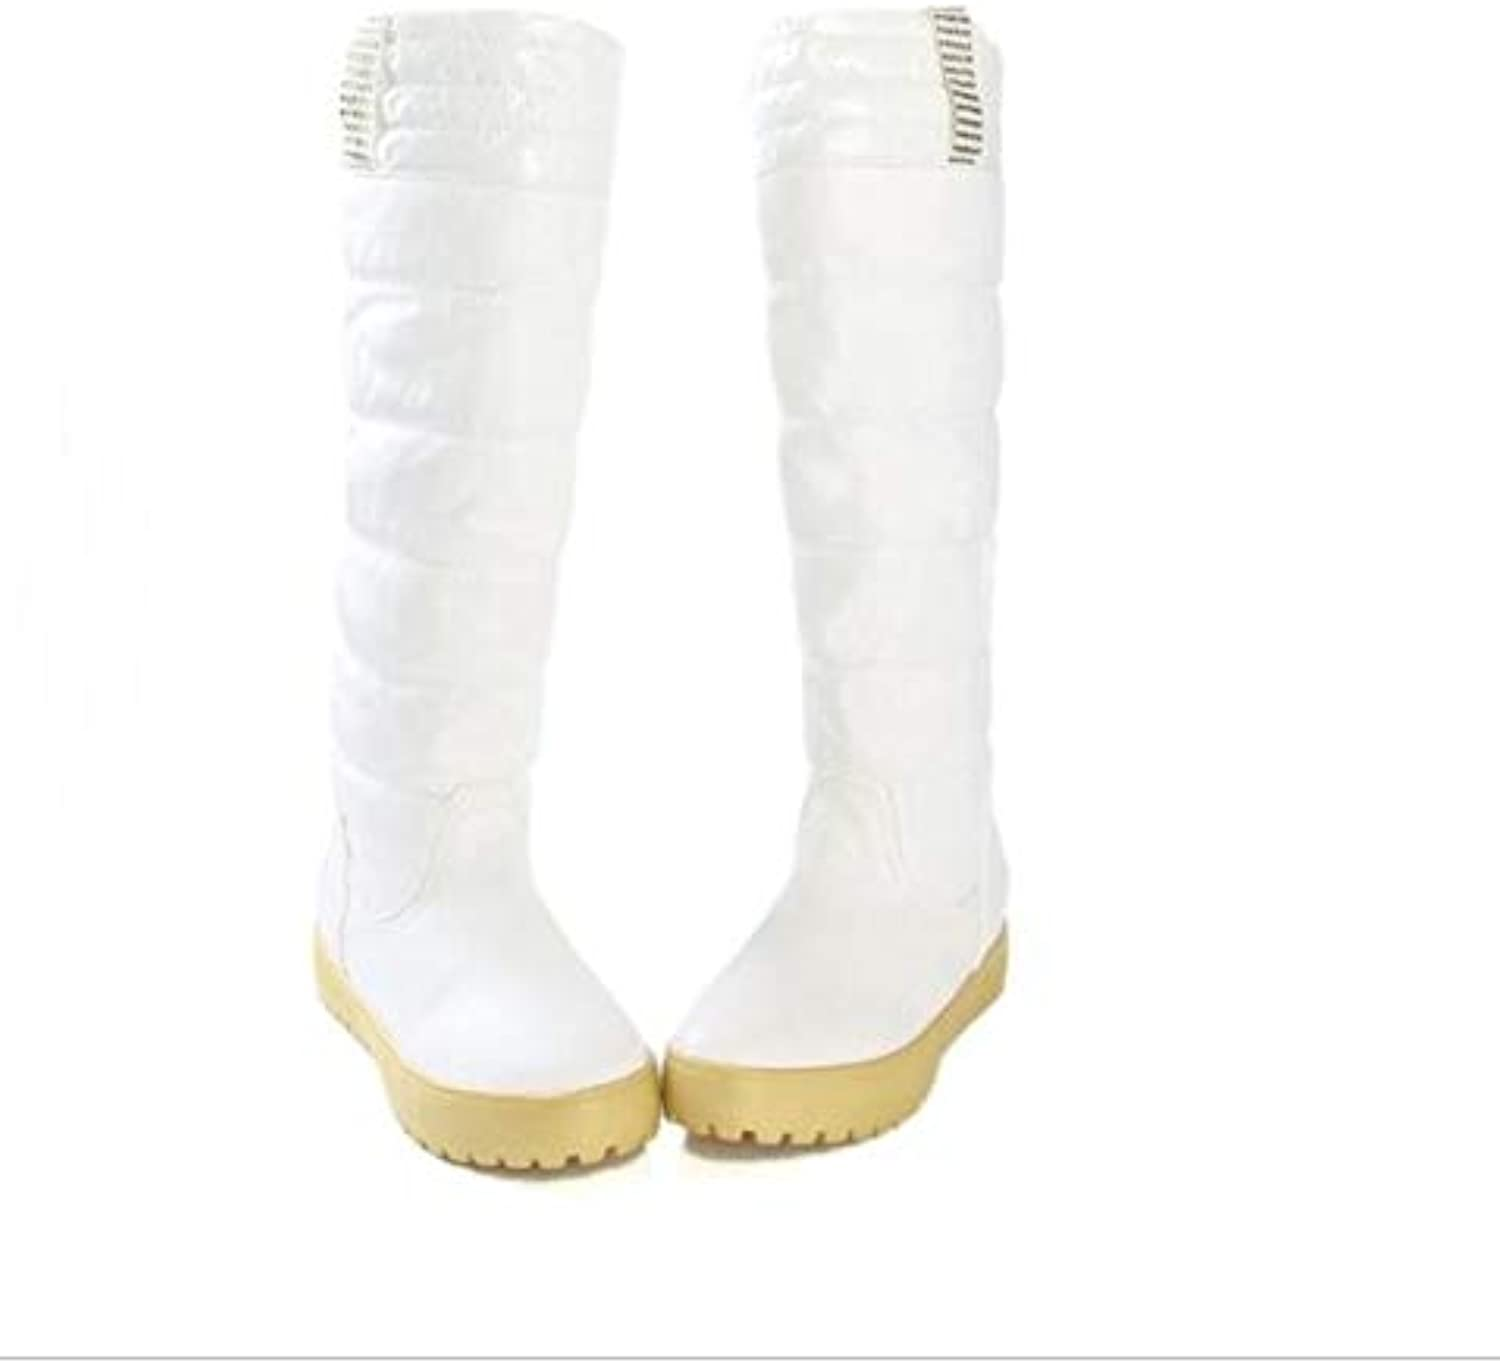 Top Shishang Autumn Winter Warm Lined Waterproof high Boots Thick Snow Boots Women